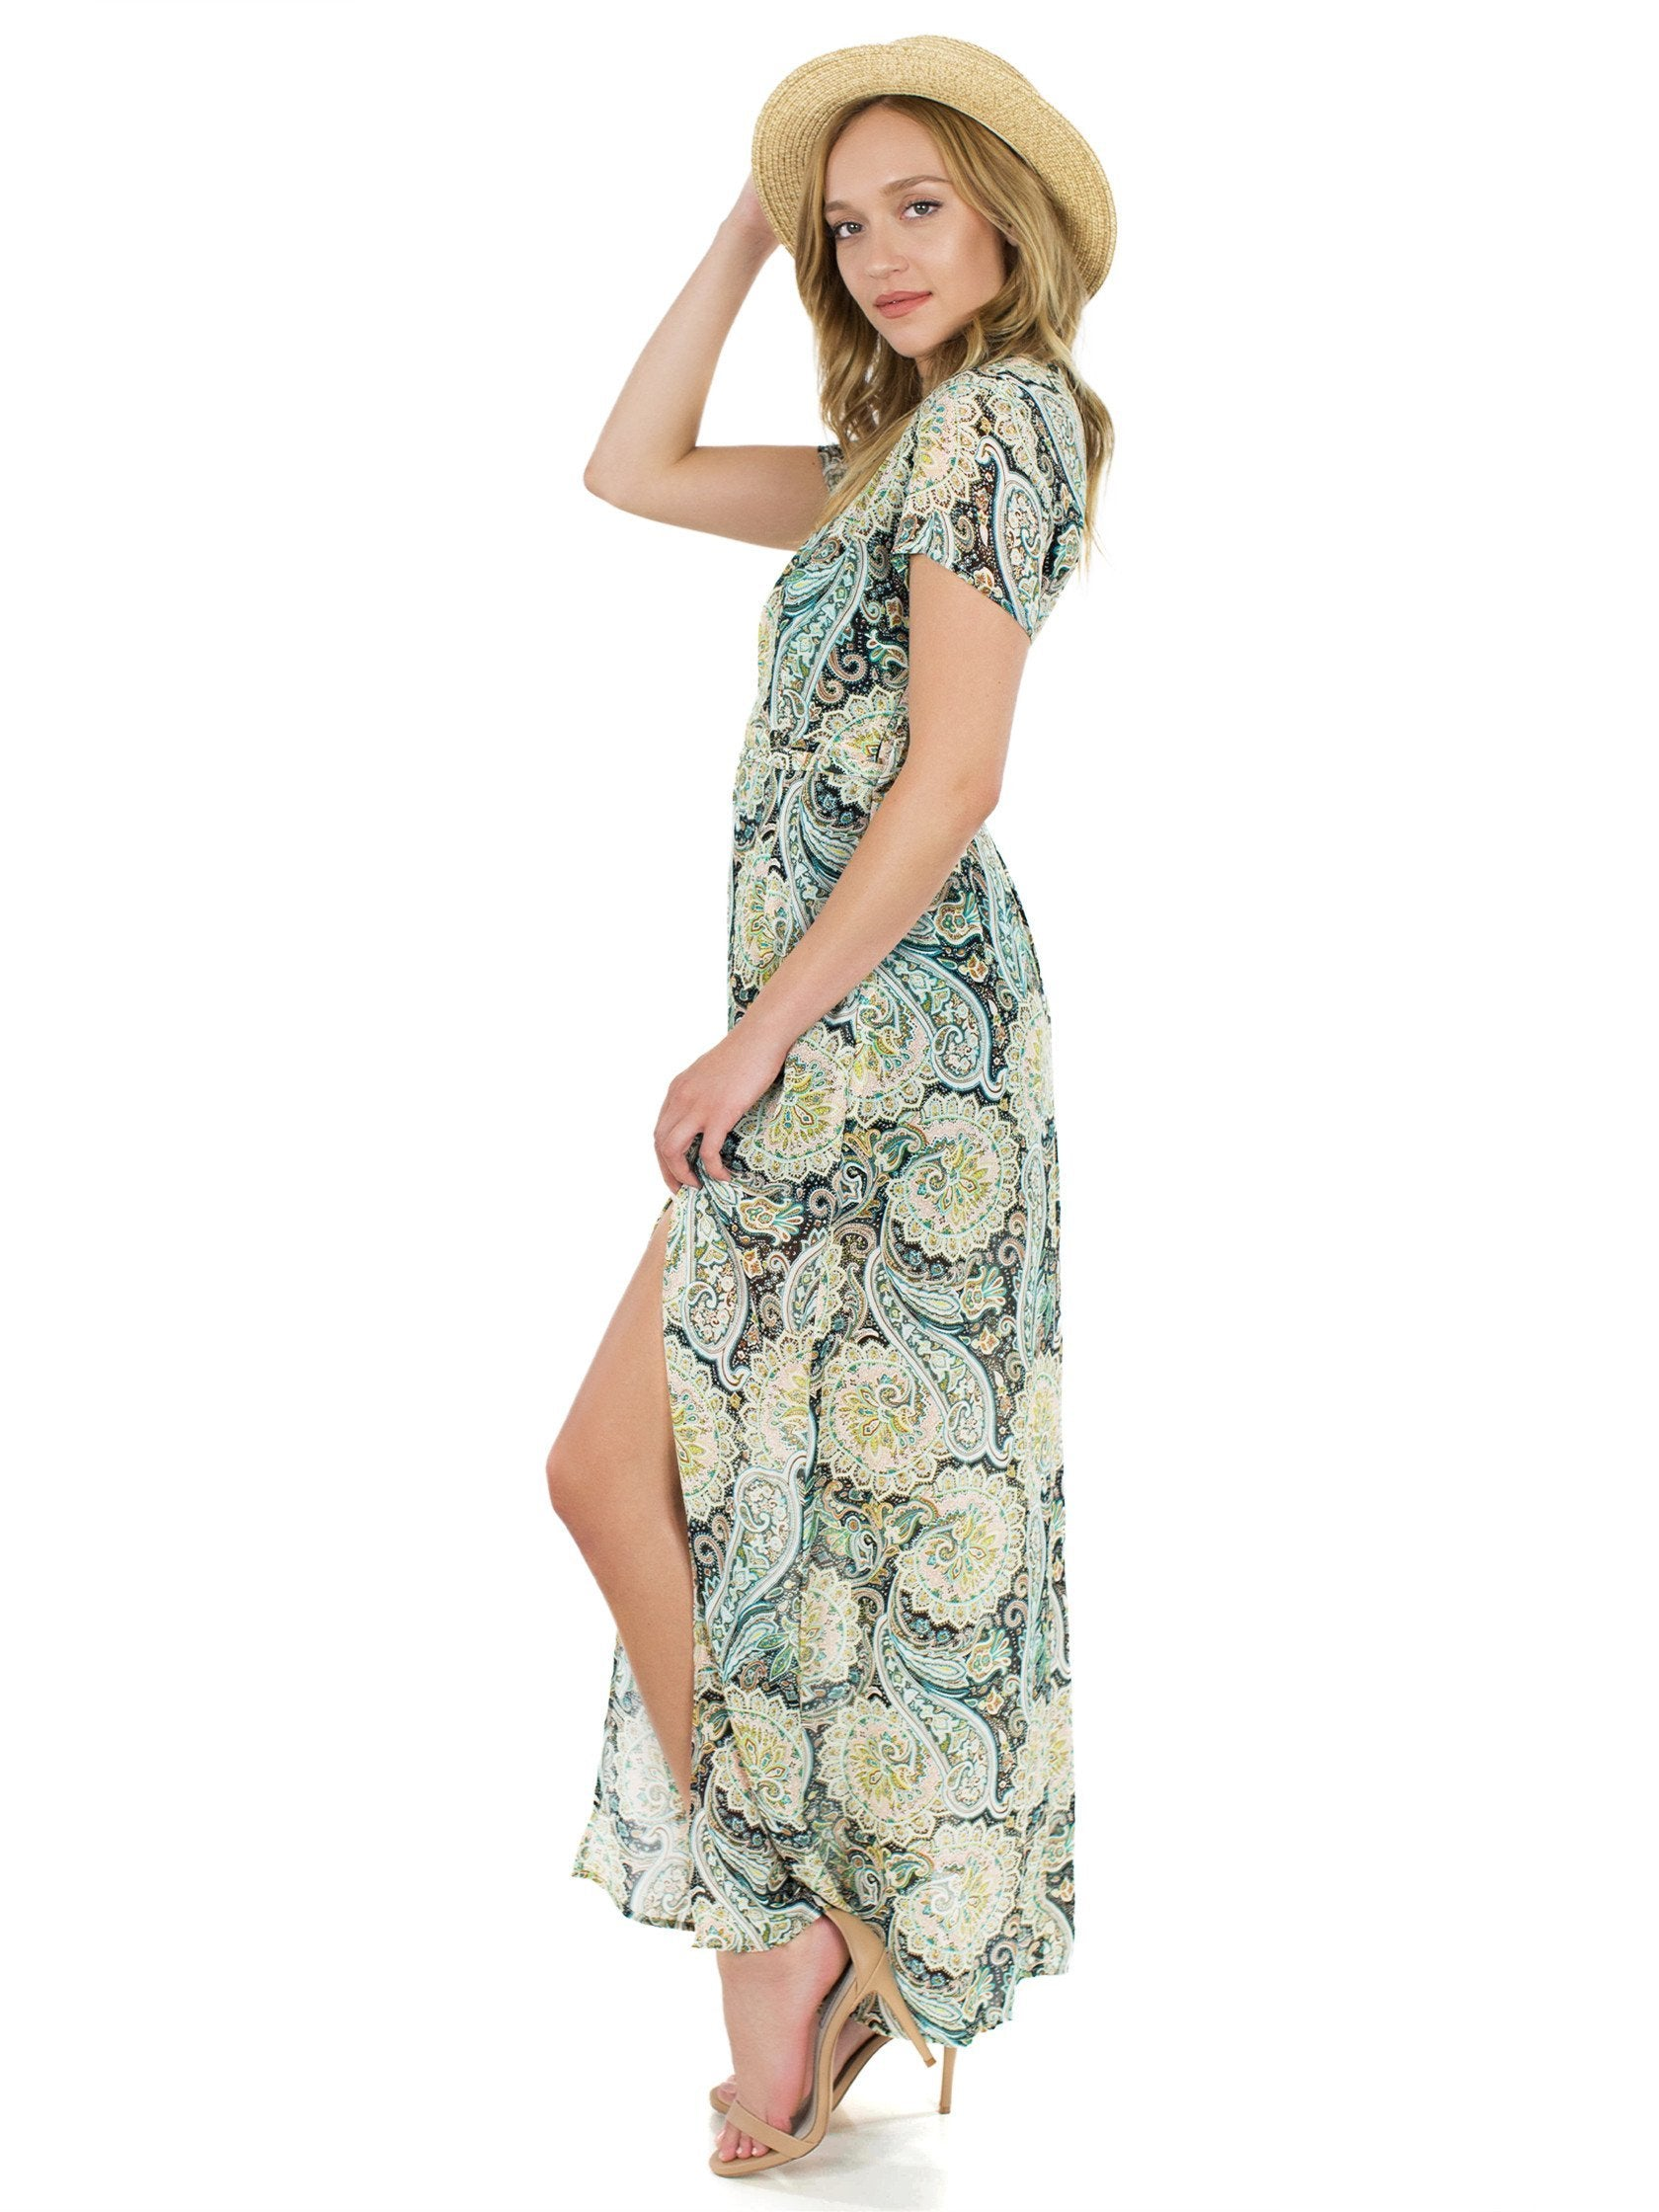 Girl outfit in a dress rental from WYLDR called Flawless Maxi Dress